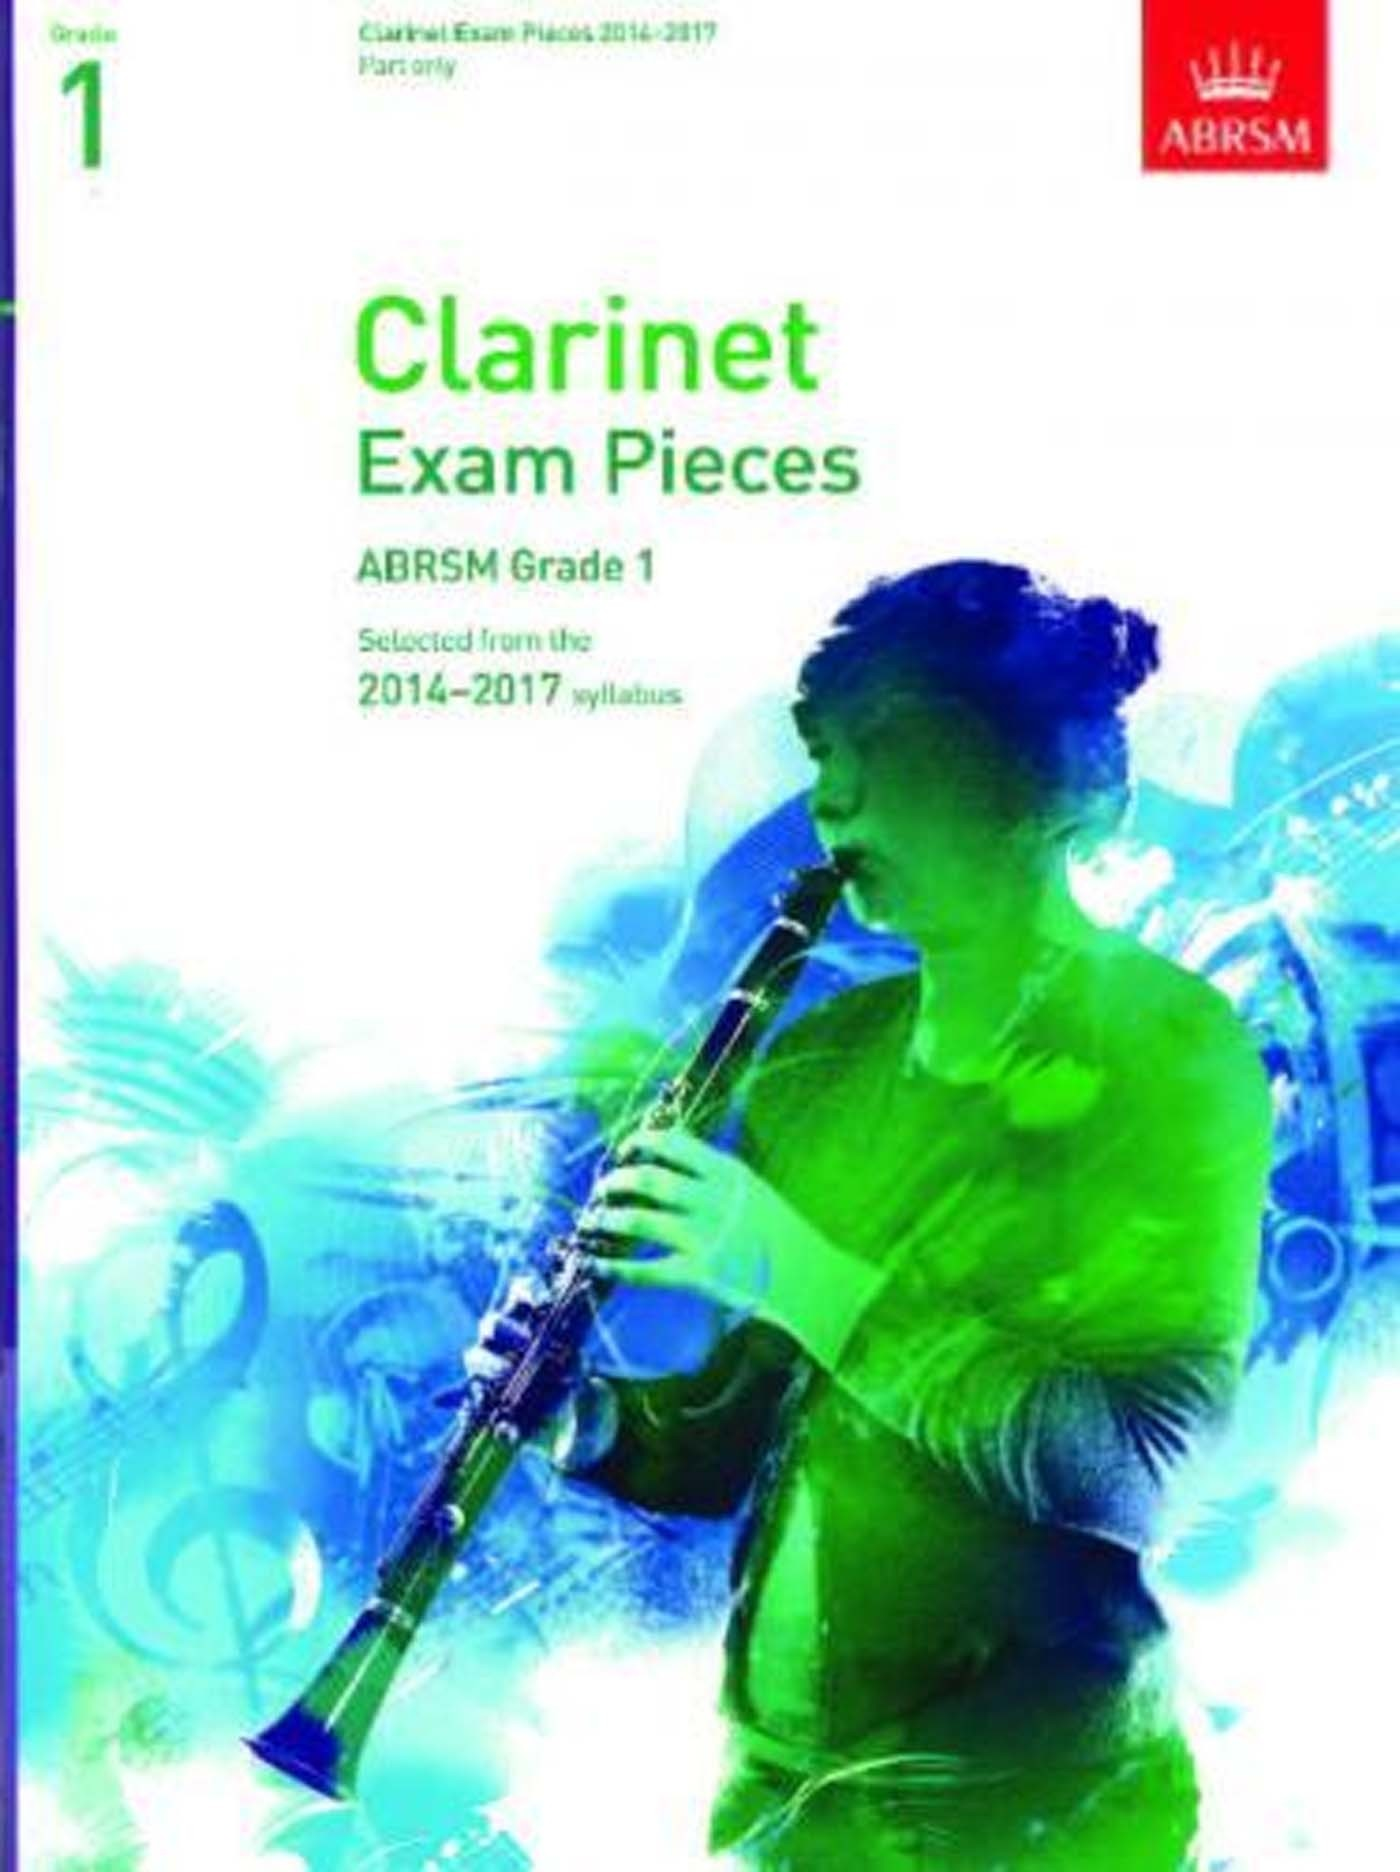 Clarinet Exam Pieces ABRSM Grade 1 2014-2017 Book Score & Part S98